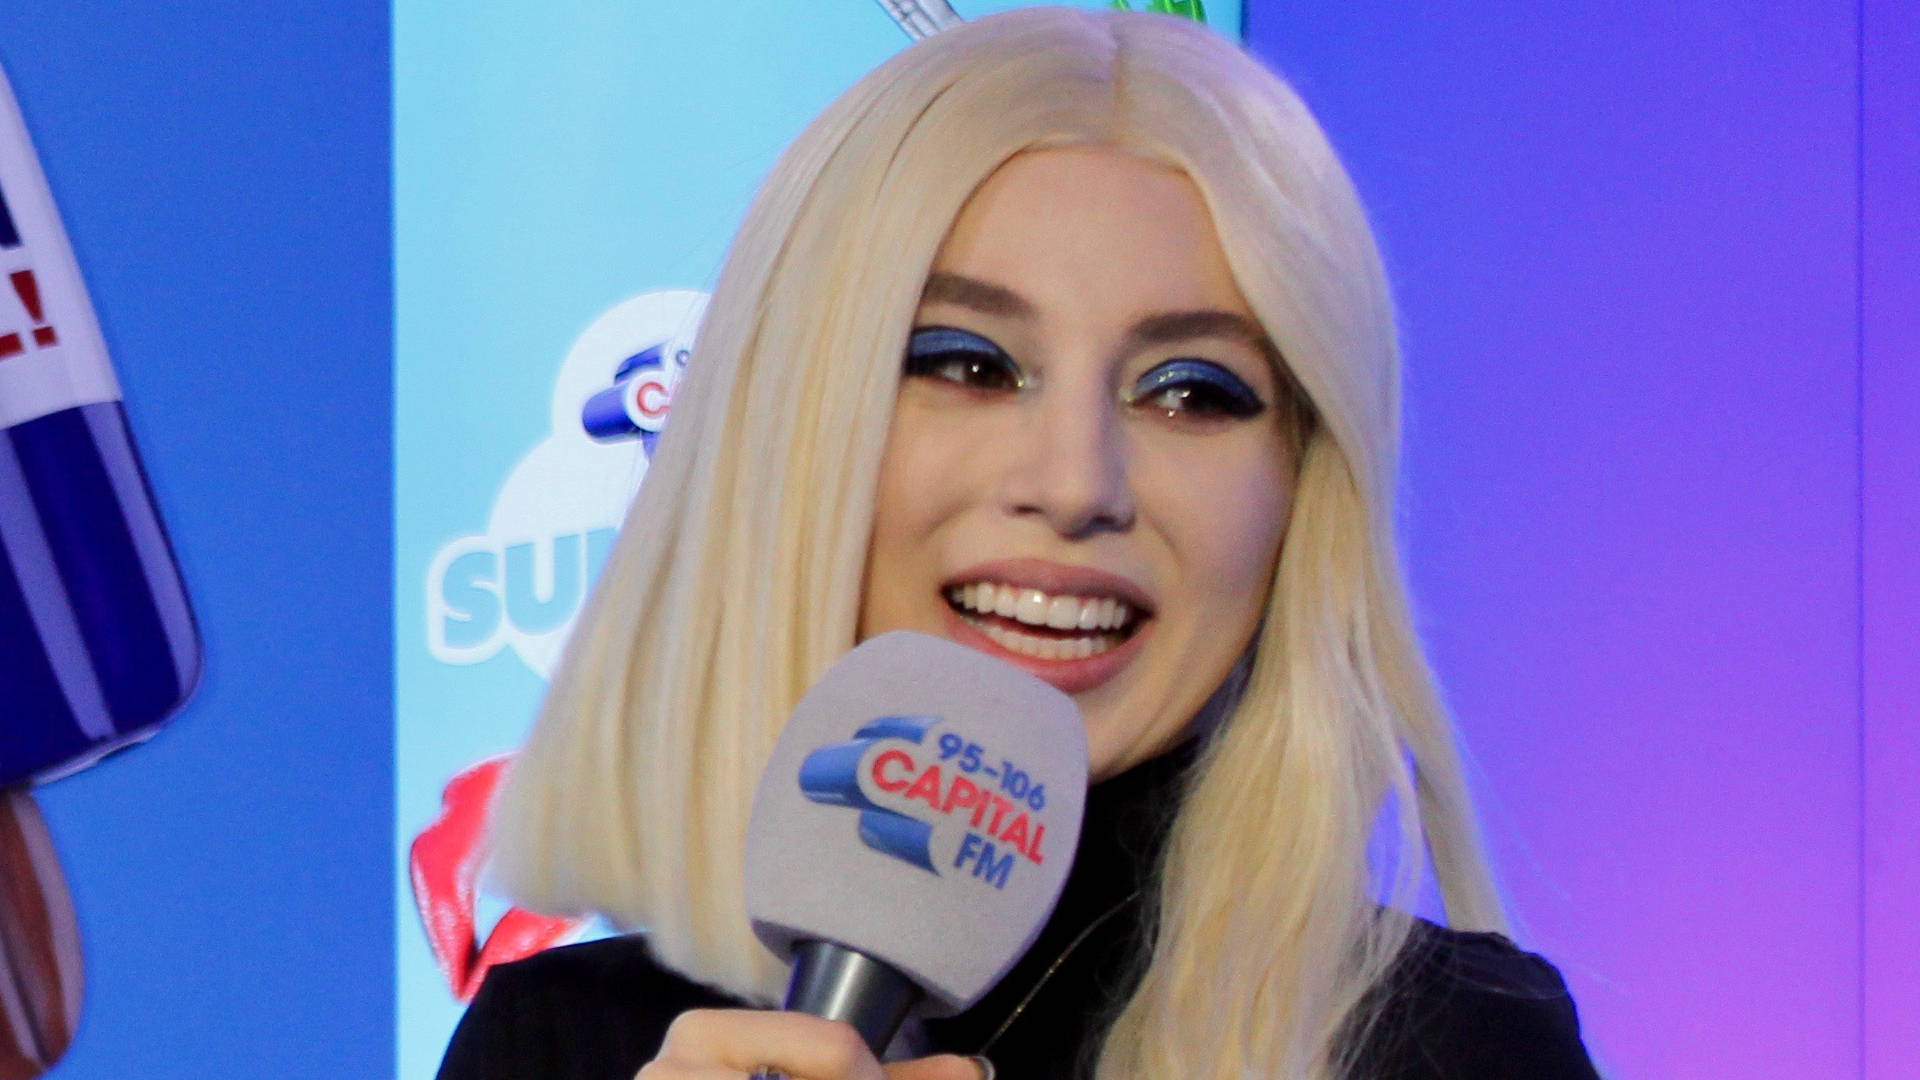 WATCH: Ava Makes Calls 5 Seconds Of Summer The Most Psycho #CapitalSTB Ballers